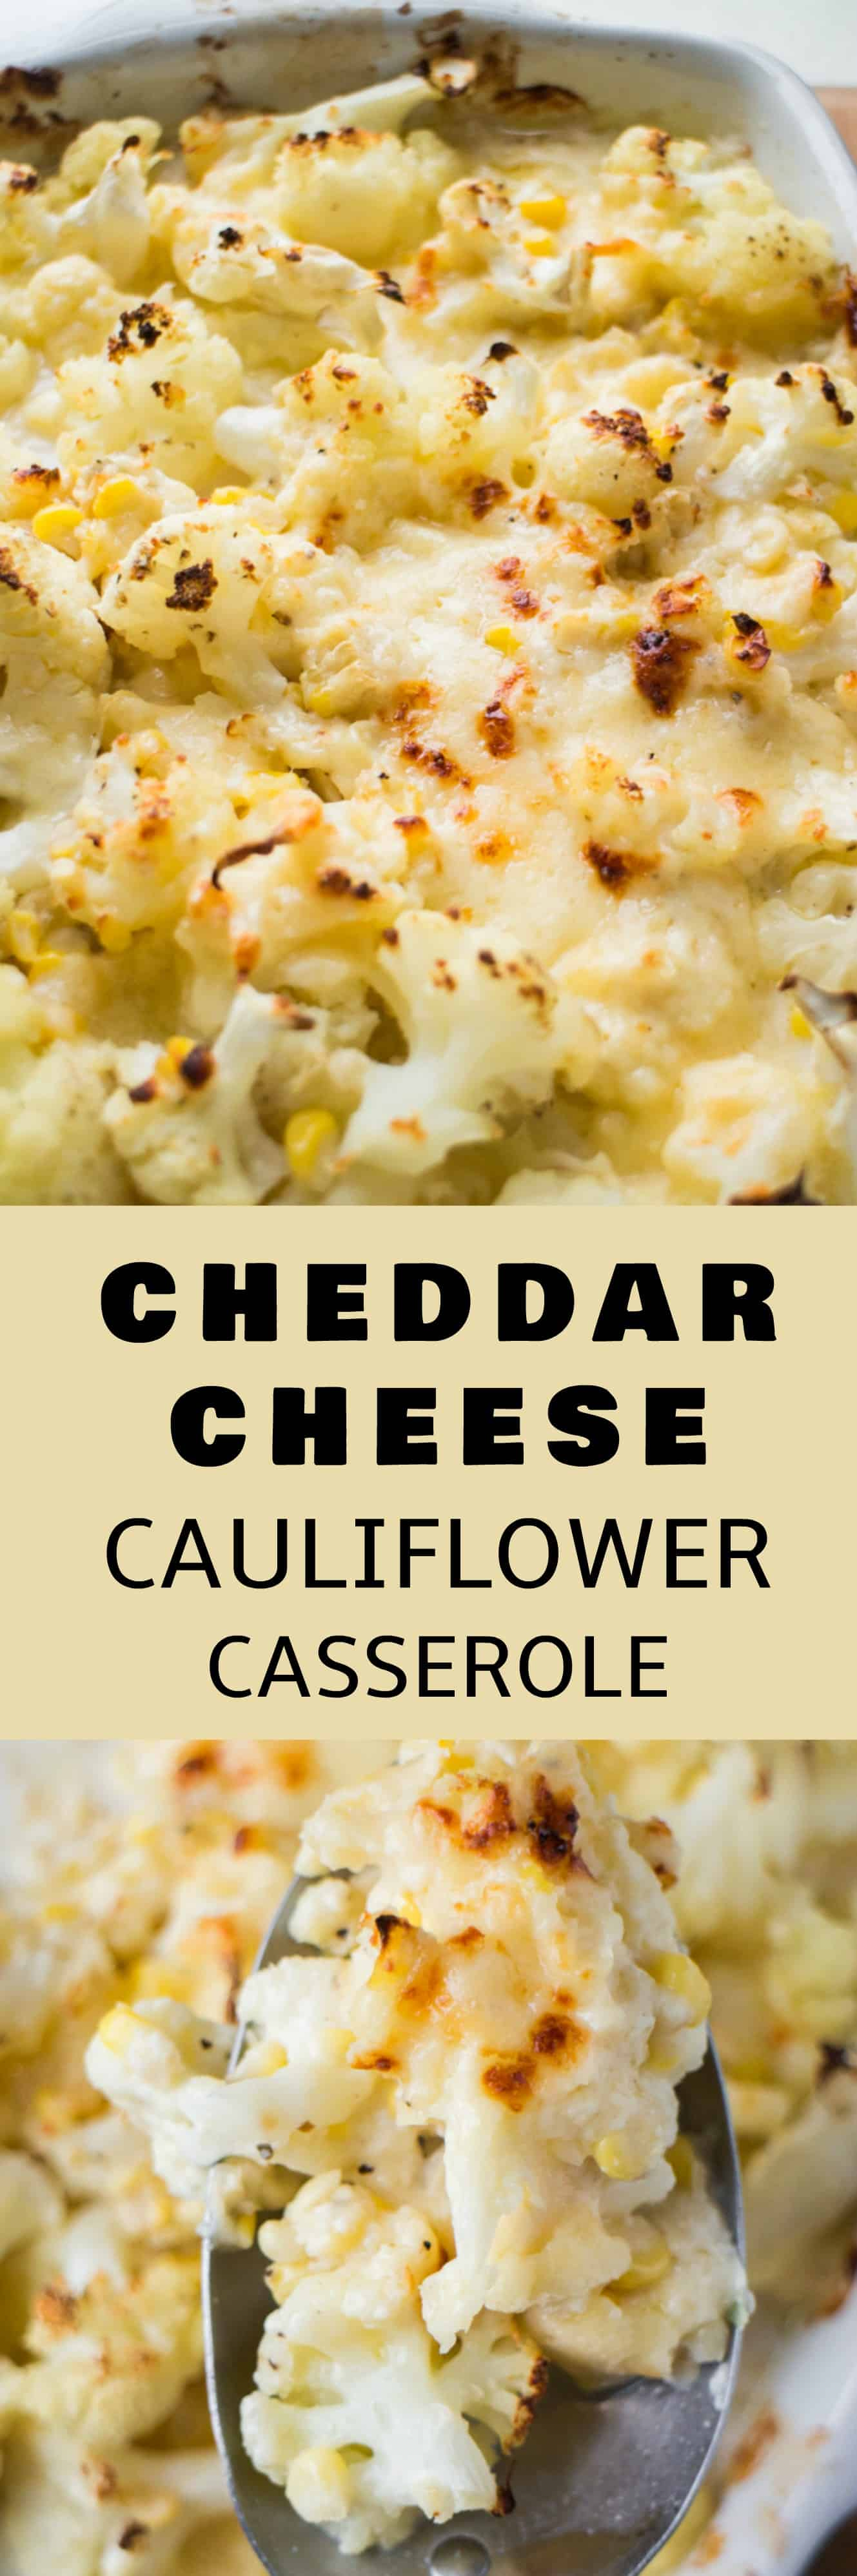 BAKED Cheddar Cheese Cauliflower Casserole recipe! It's vegetarian and loaded with cauliflower and corn! This easy to make low carb, keto casserole can be either a side dish or a main dish!